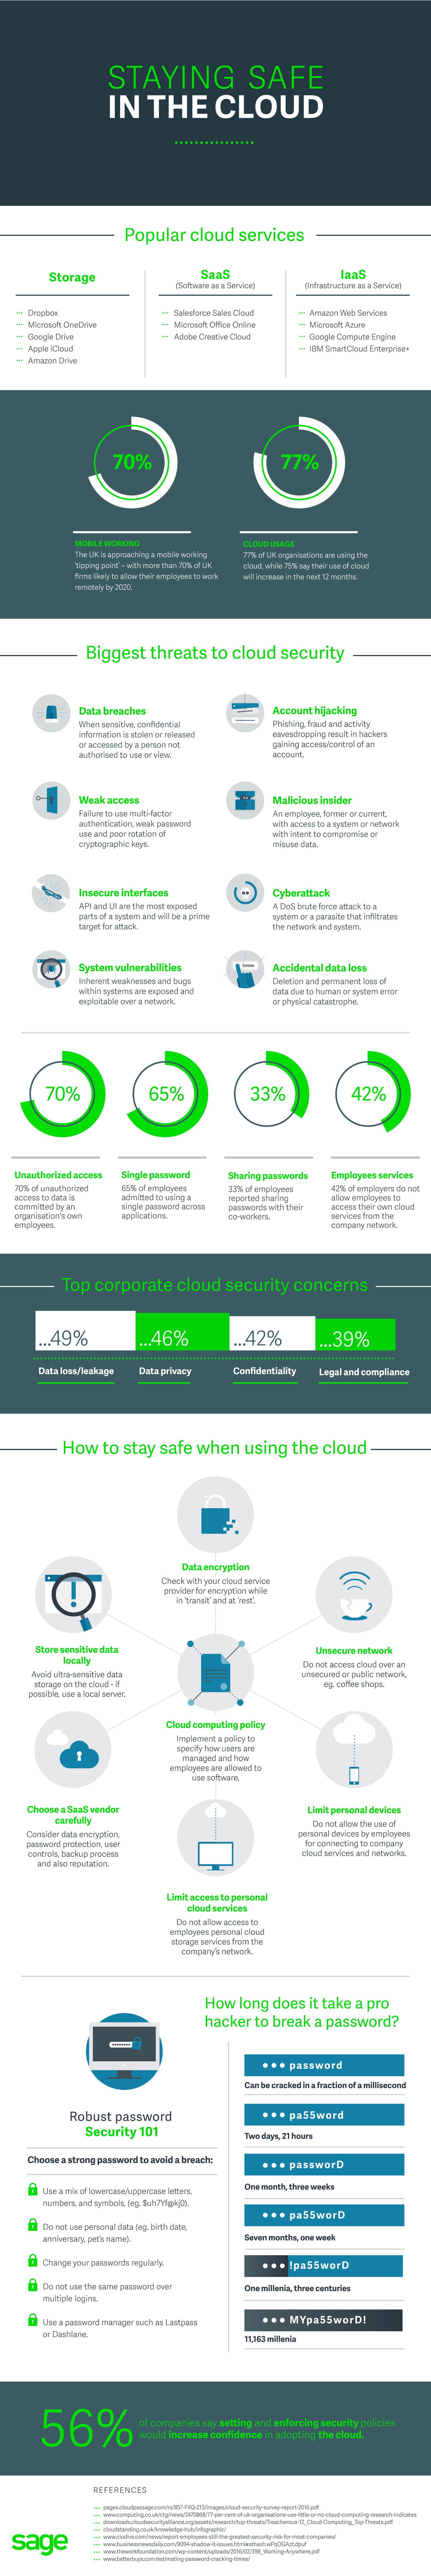 Stay safe in the cloud infographic